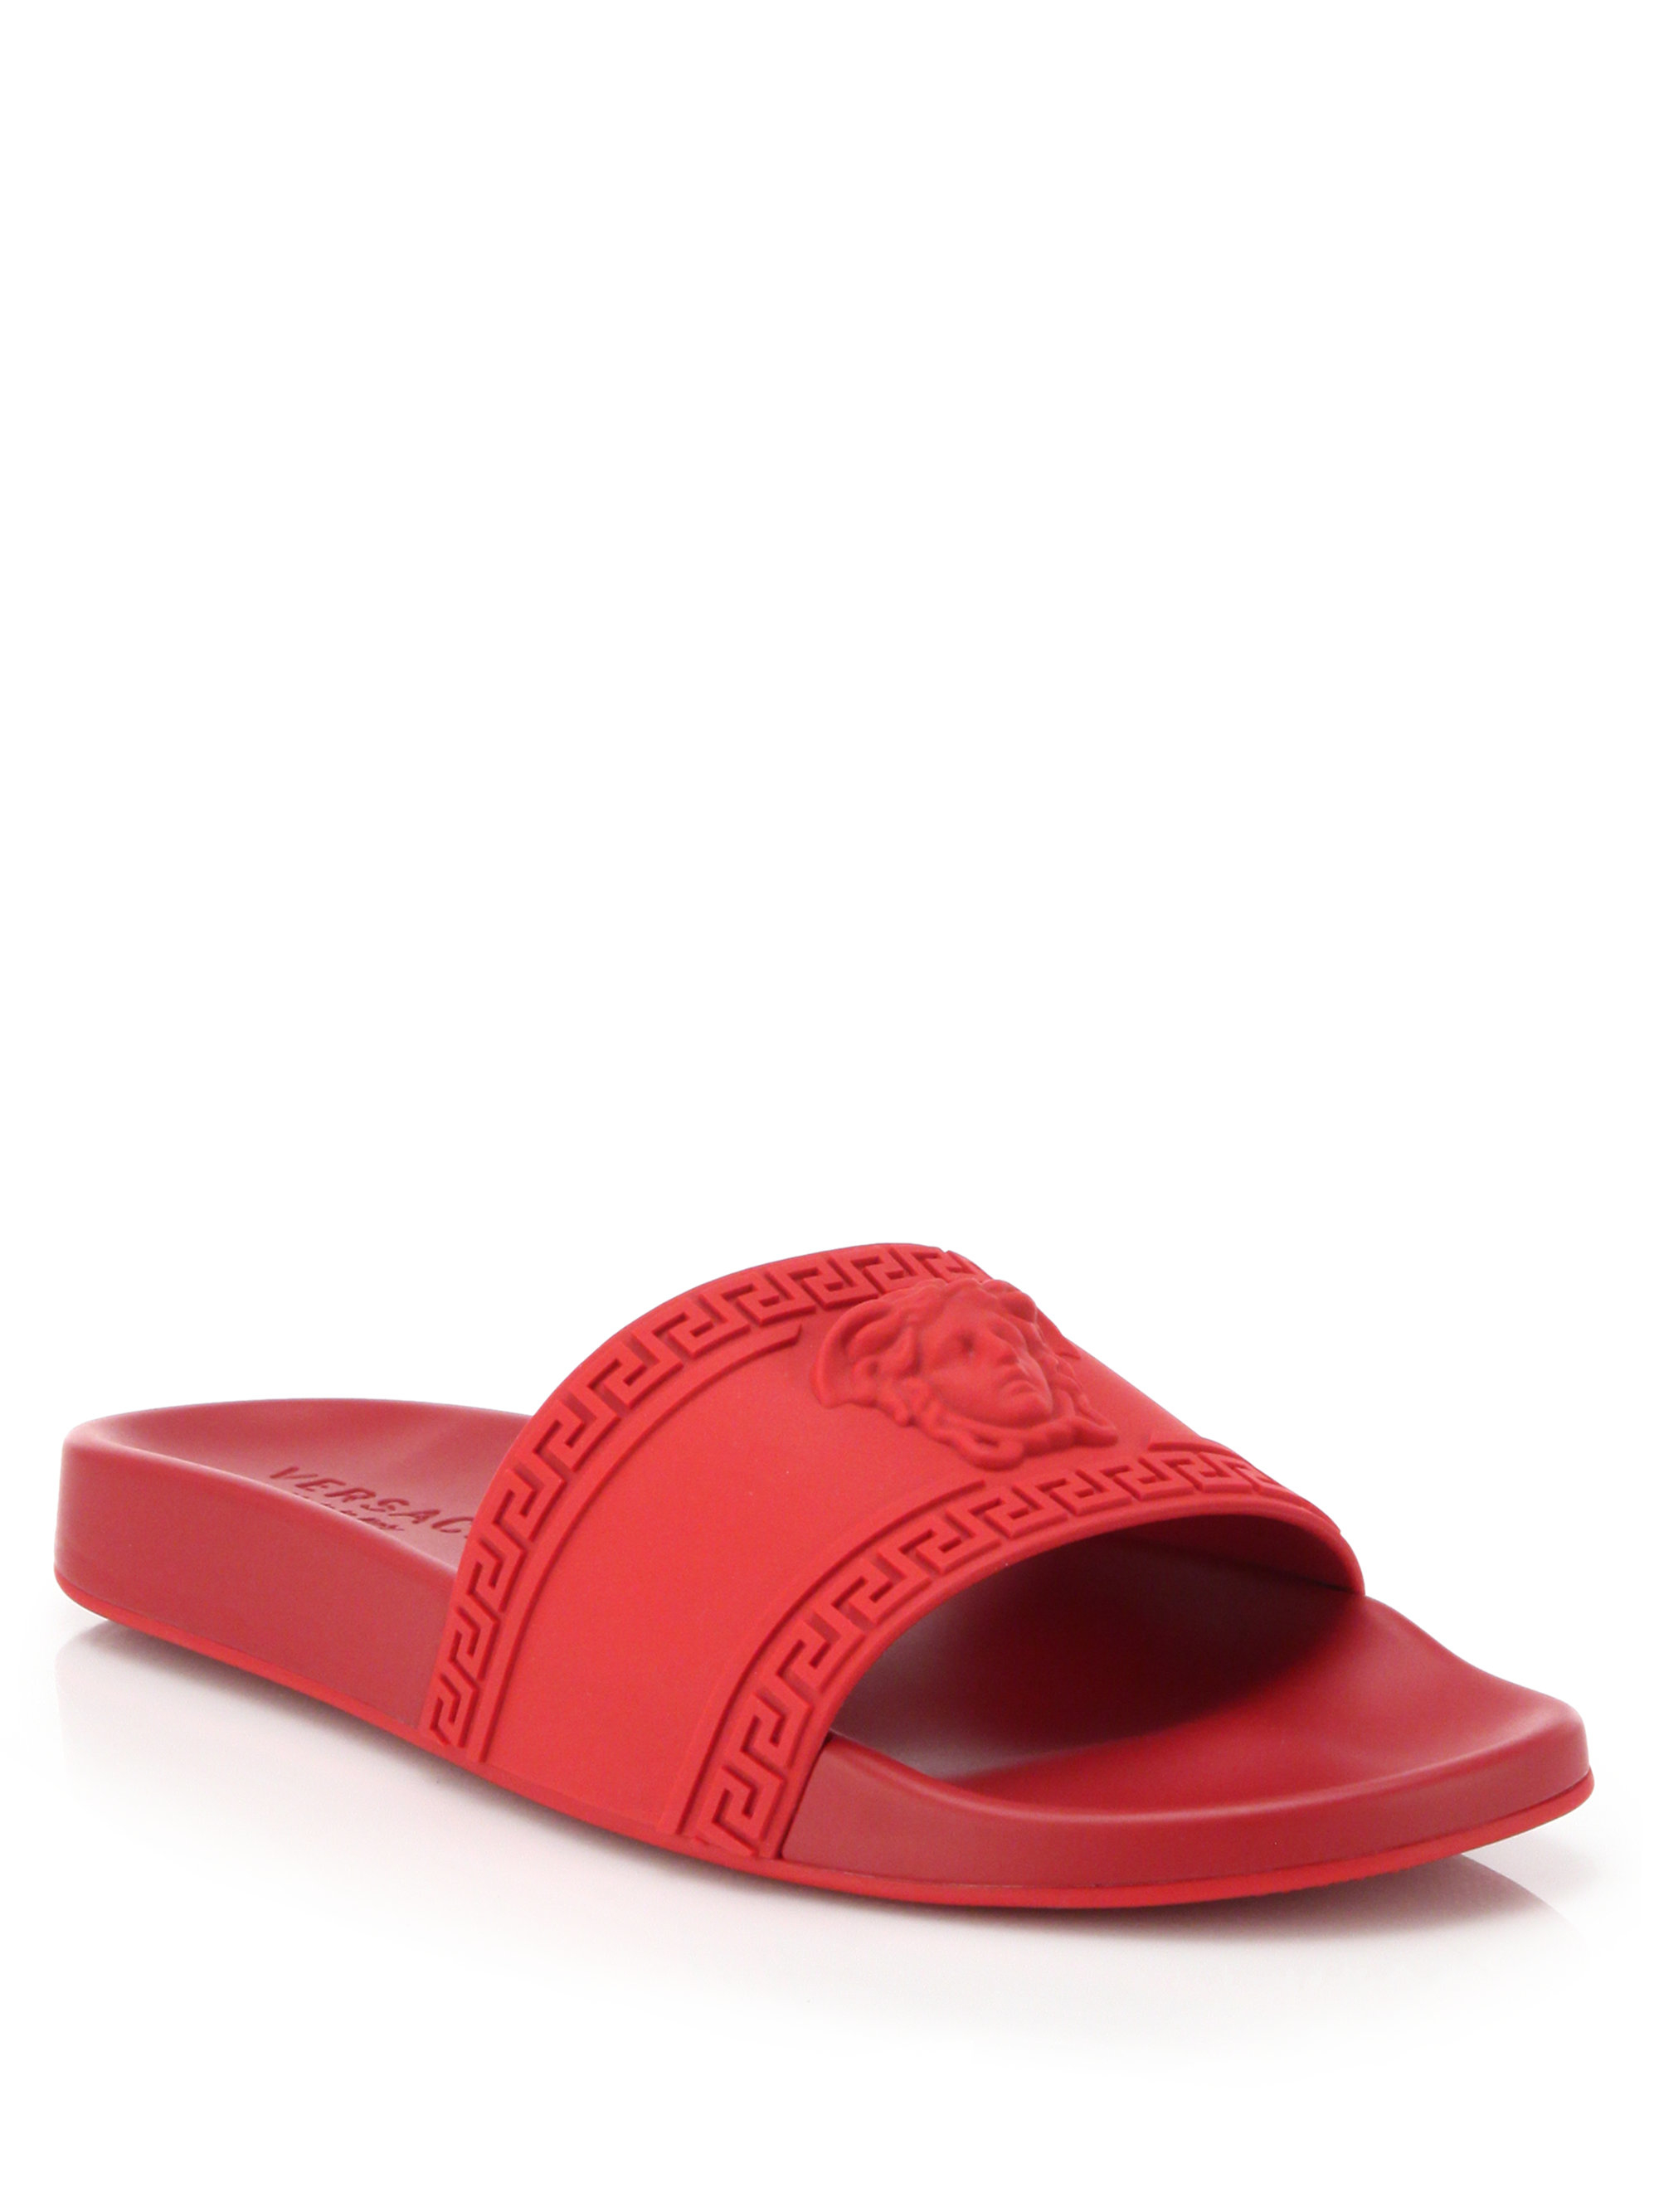 Brilliant Versace Sandals W Tags  Shoes  VES23215  The RealReal